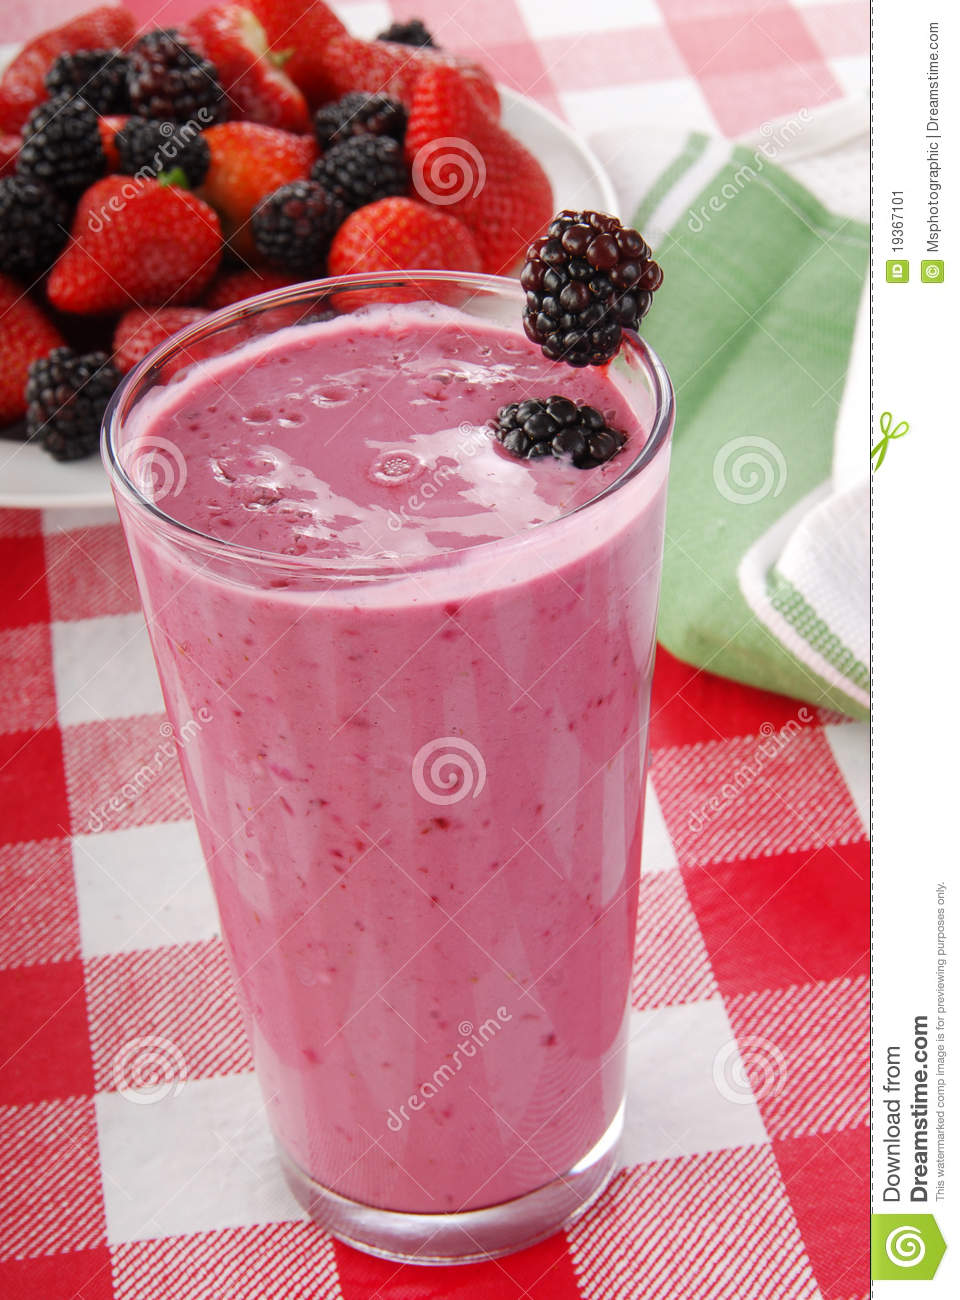 More similar stock images of ` Yogurt smoothie with blackberries `